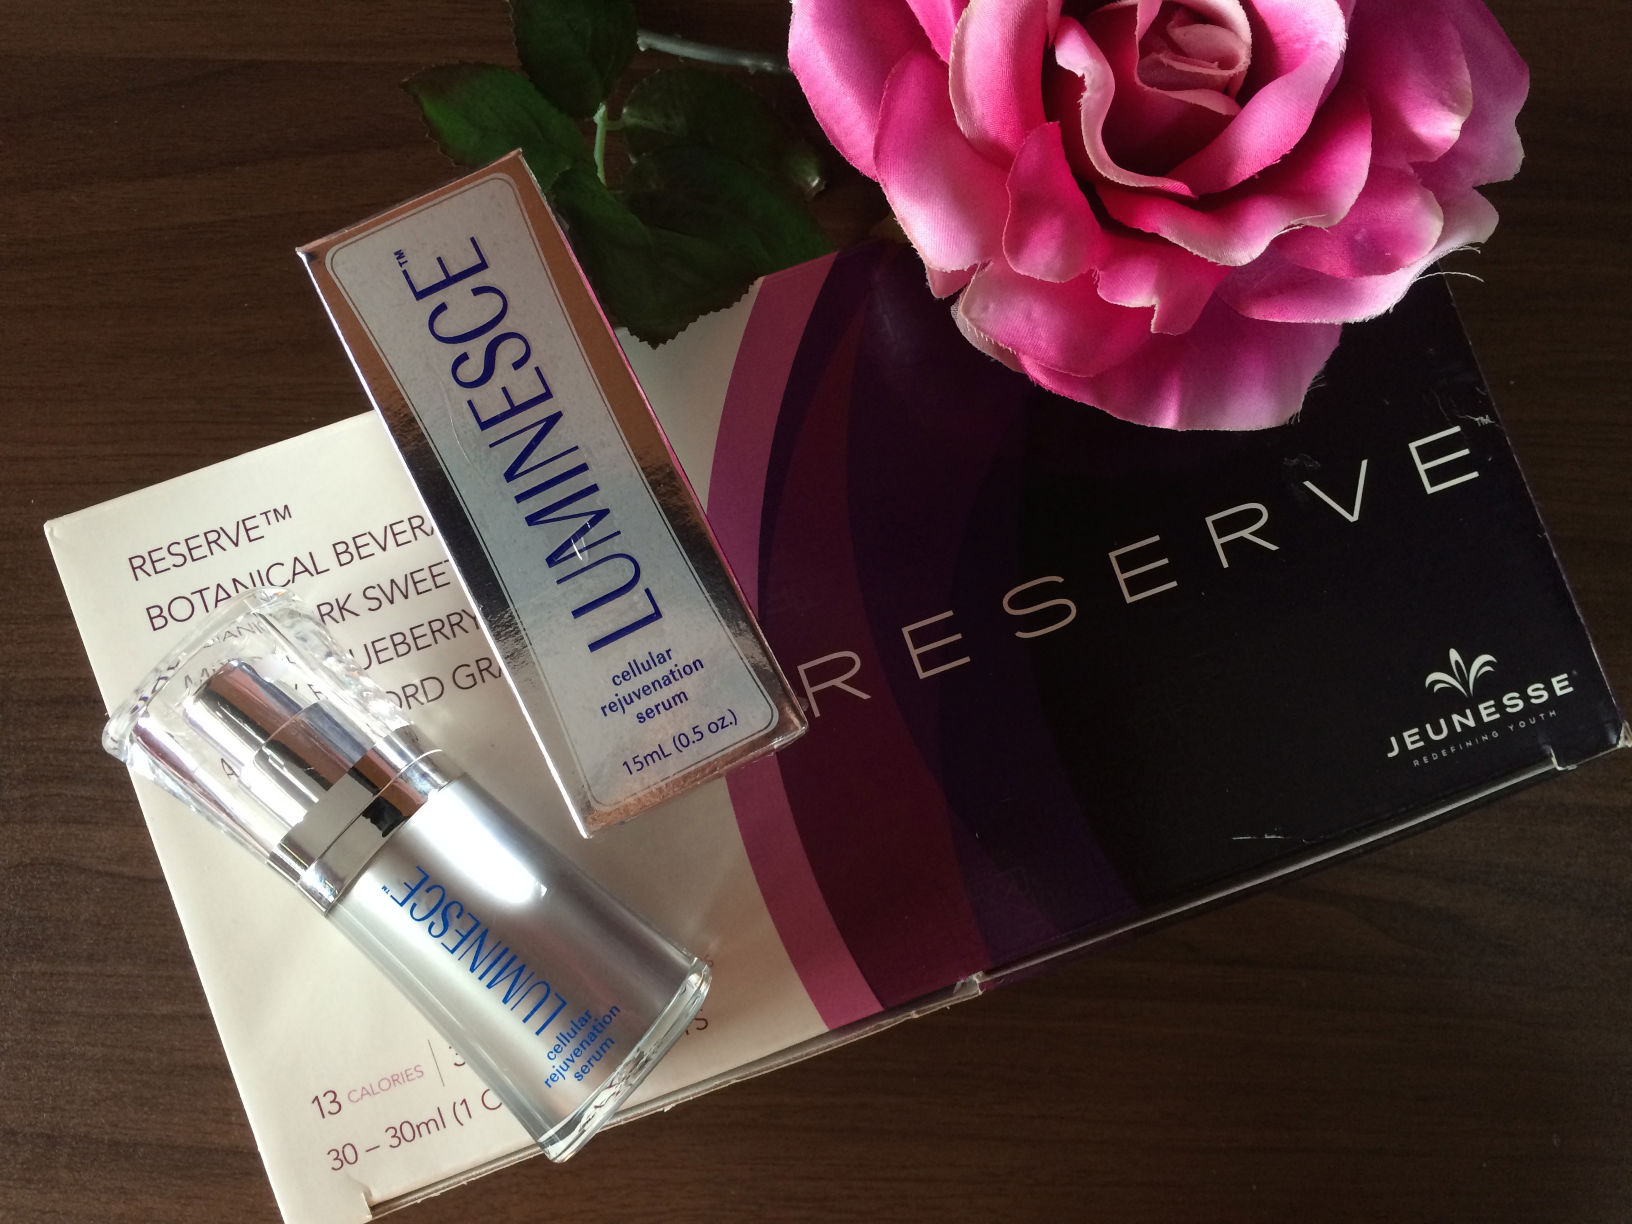 Jeunesse-Anti-Aging-Serum-Jeunesse-Reserve-Blogger-Review-0031 Look & Feel Younger With Jeunesse Luminesce Serum & Reserve GeL